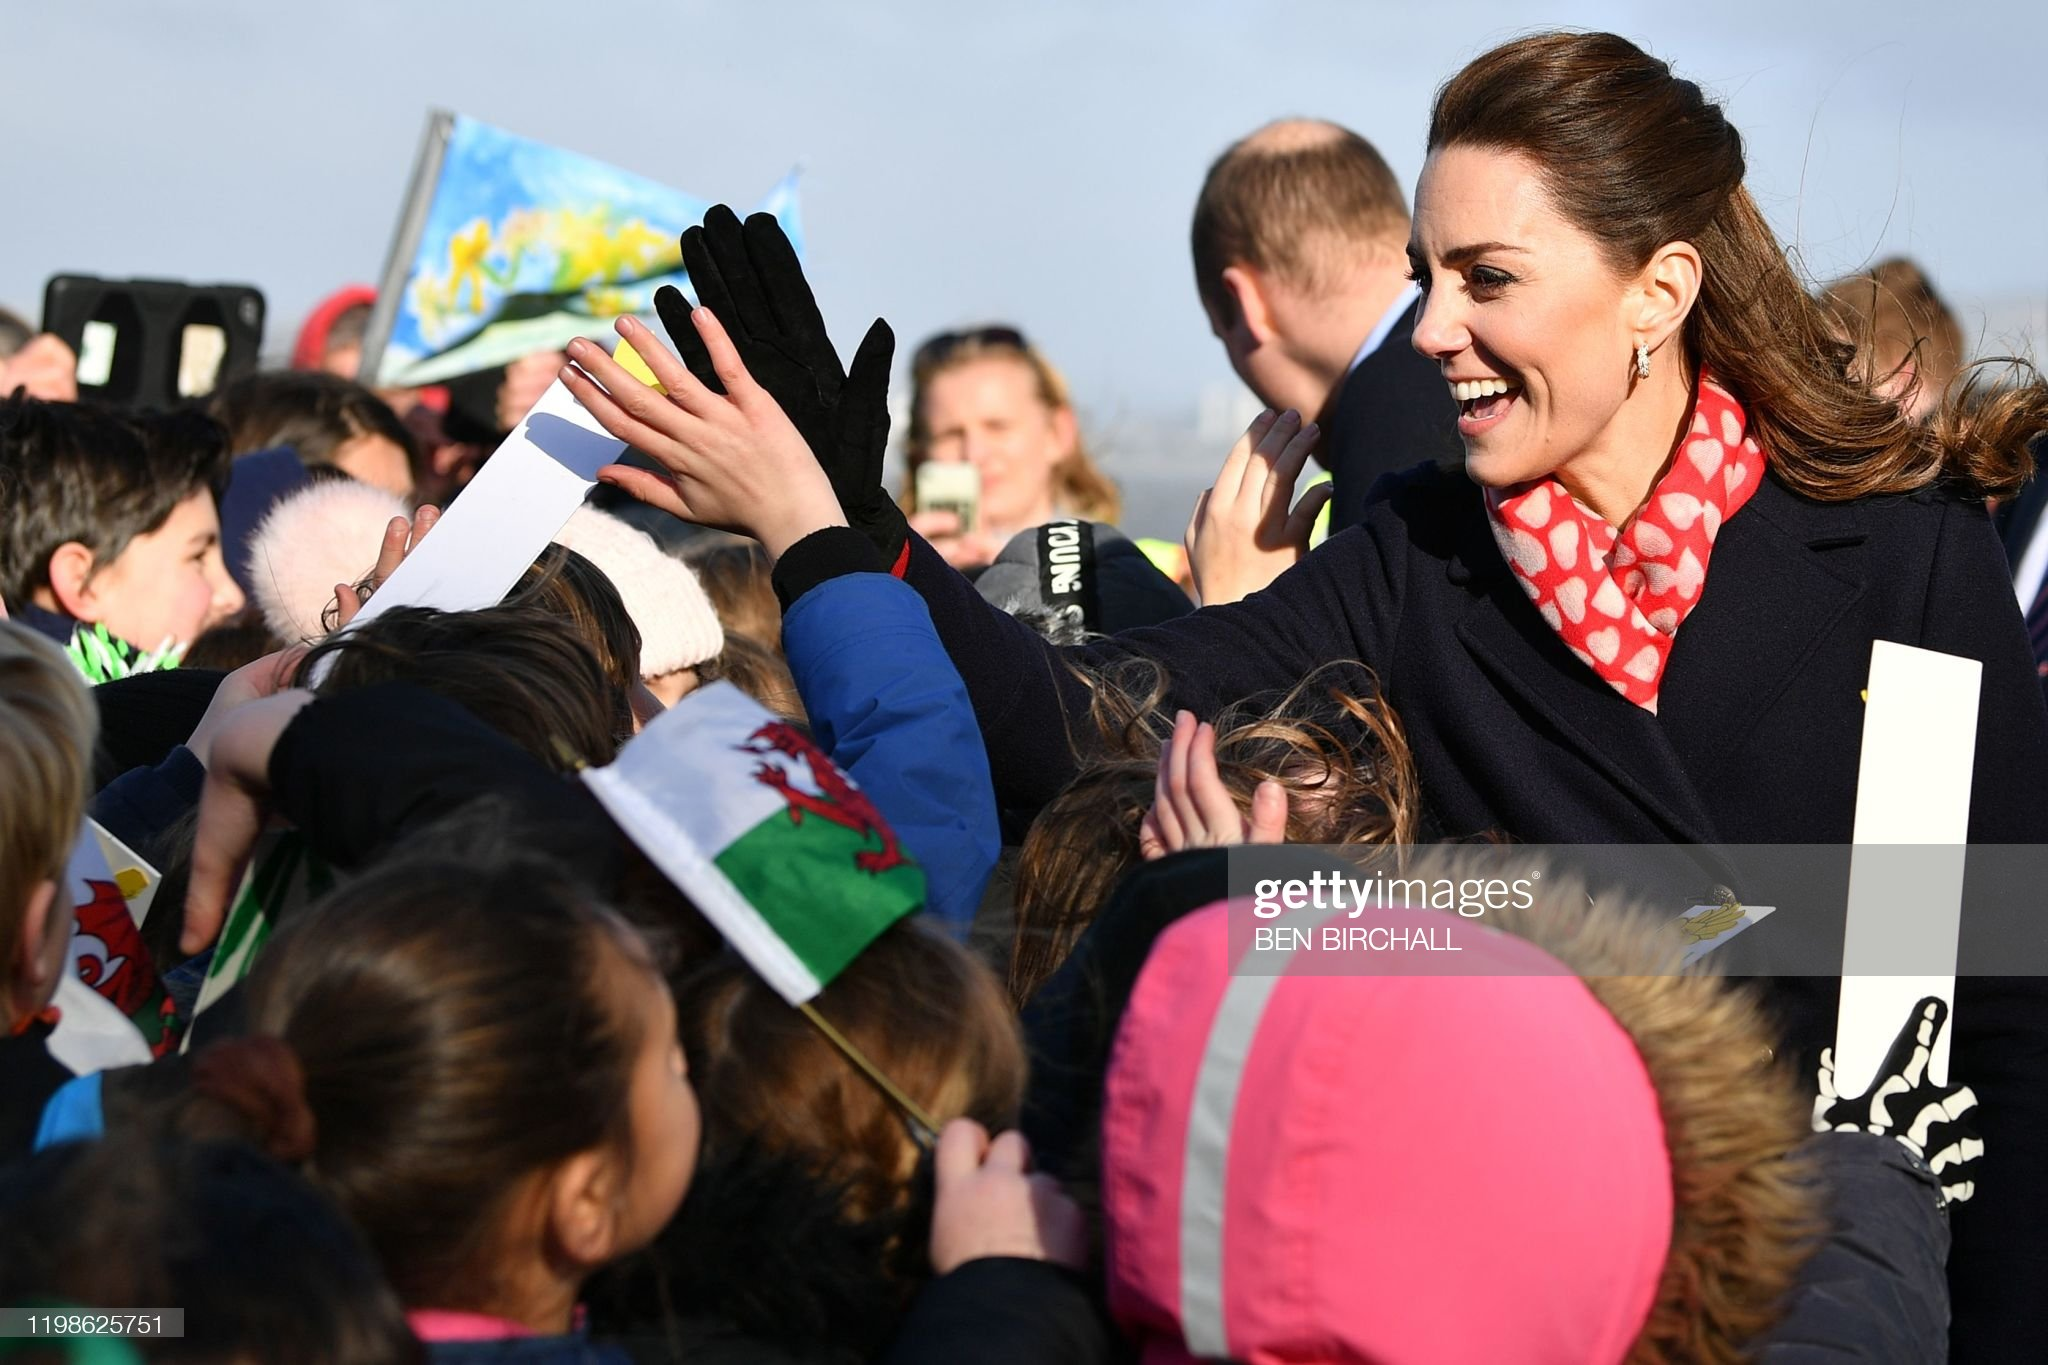 britains-prince-william-duke-of-cambridge-and-his-wife-britains-of-picture-id1198625751